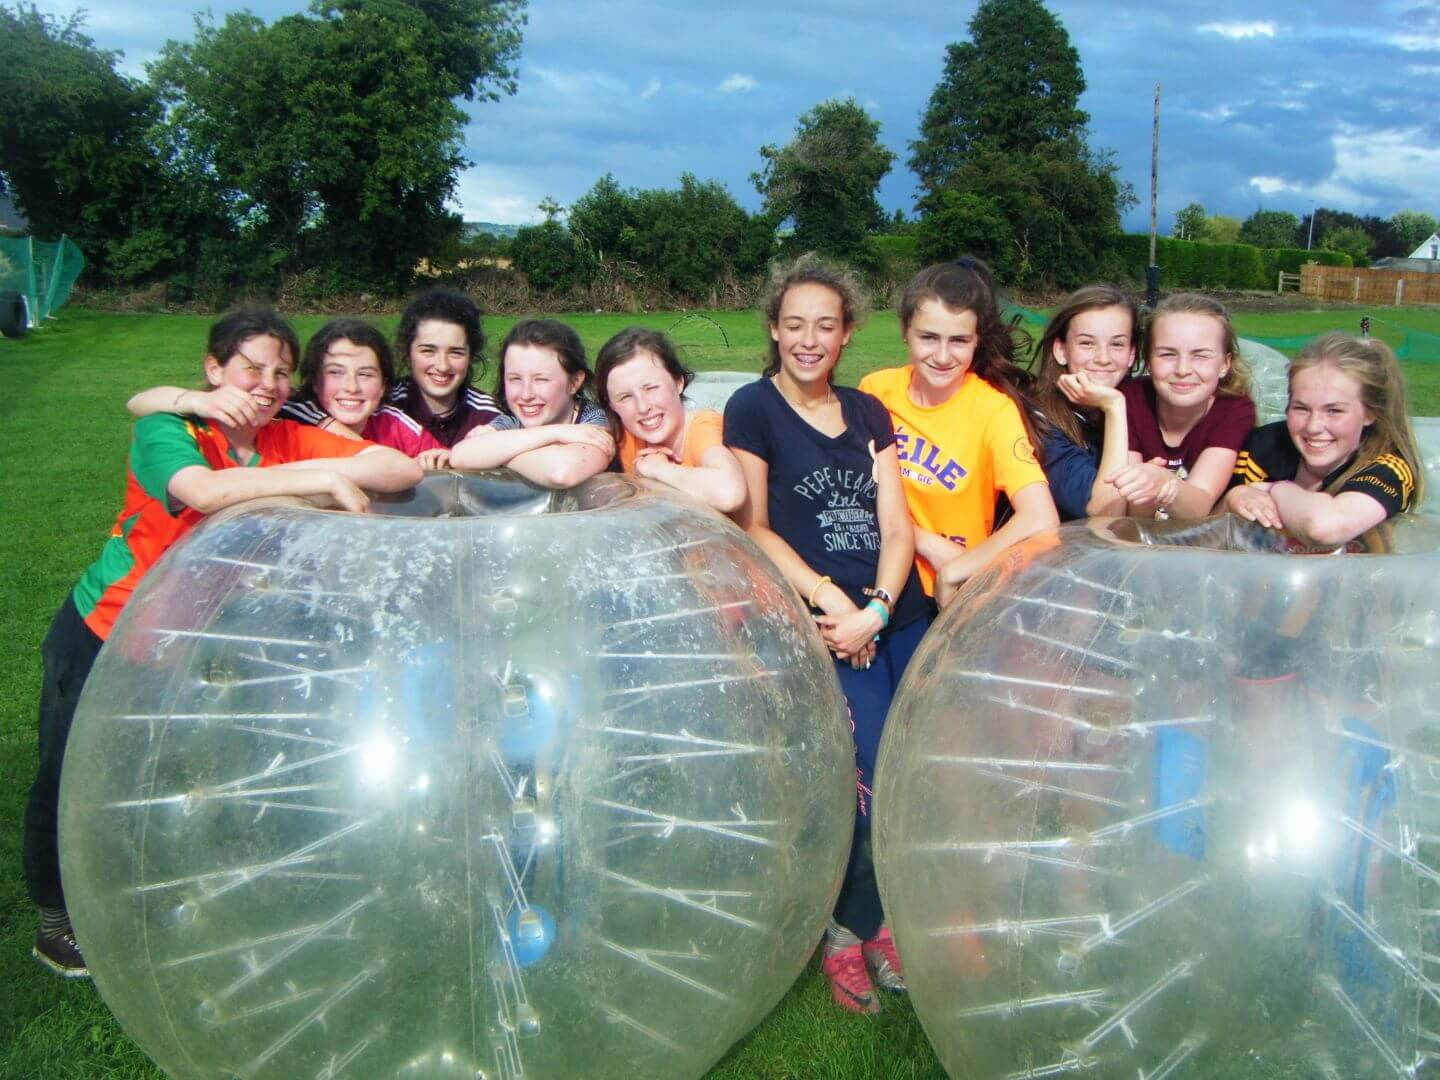 A group of happy girls on a birthday party posing behind two large bubble balls whilst taking a break during a bubble soccer game.